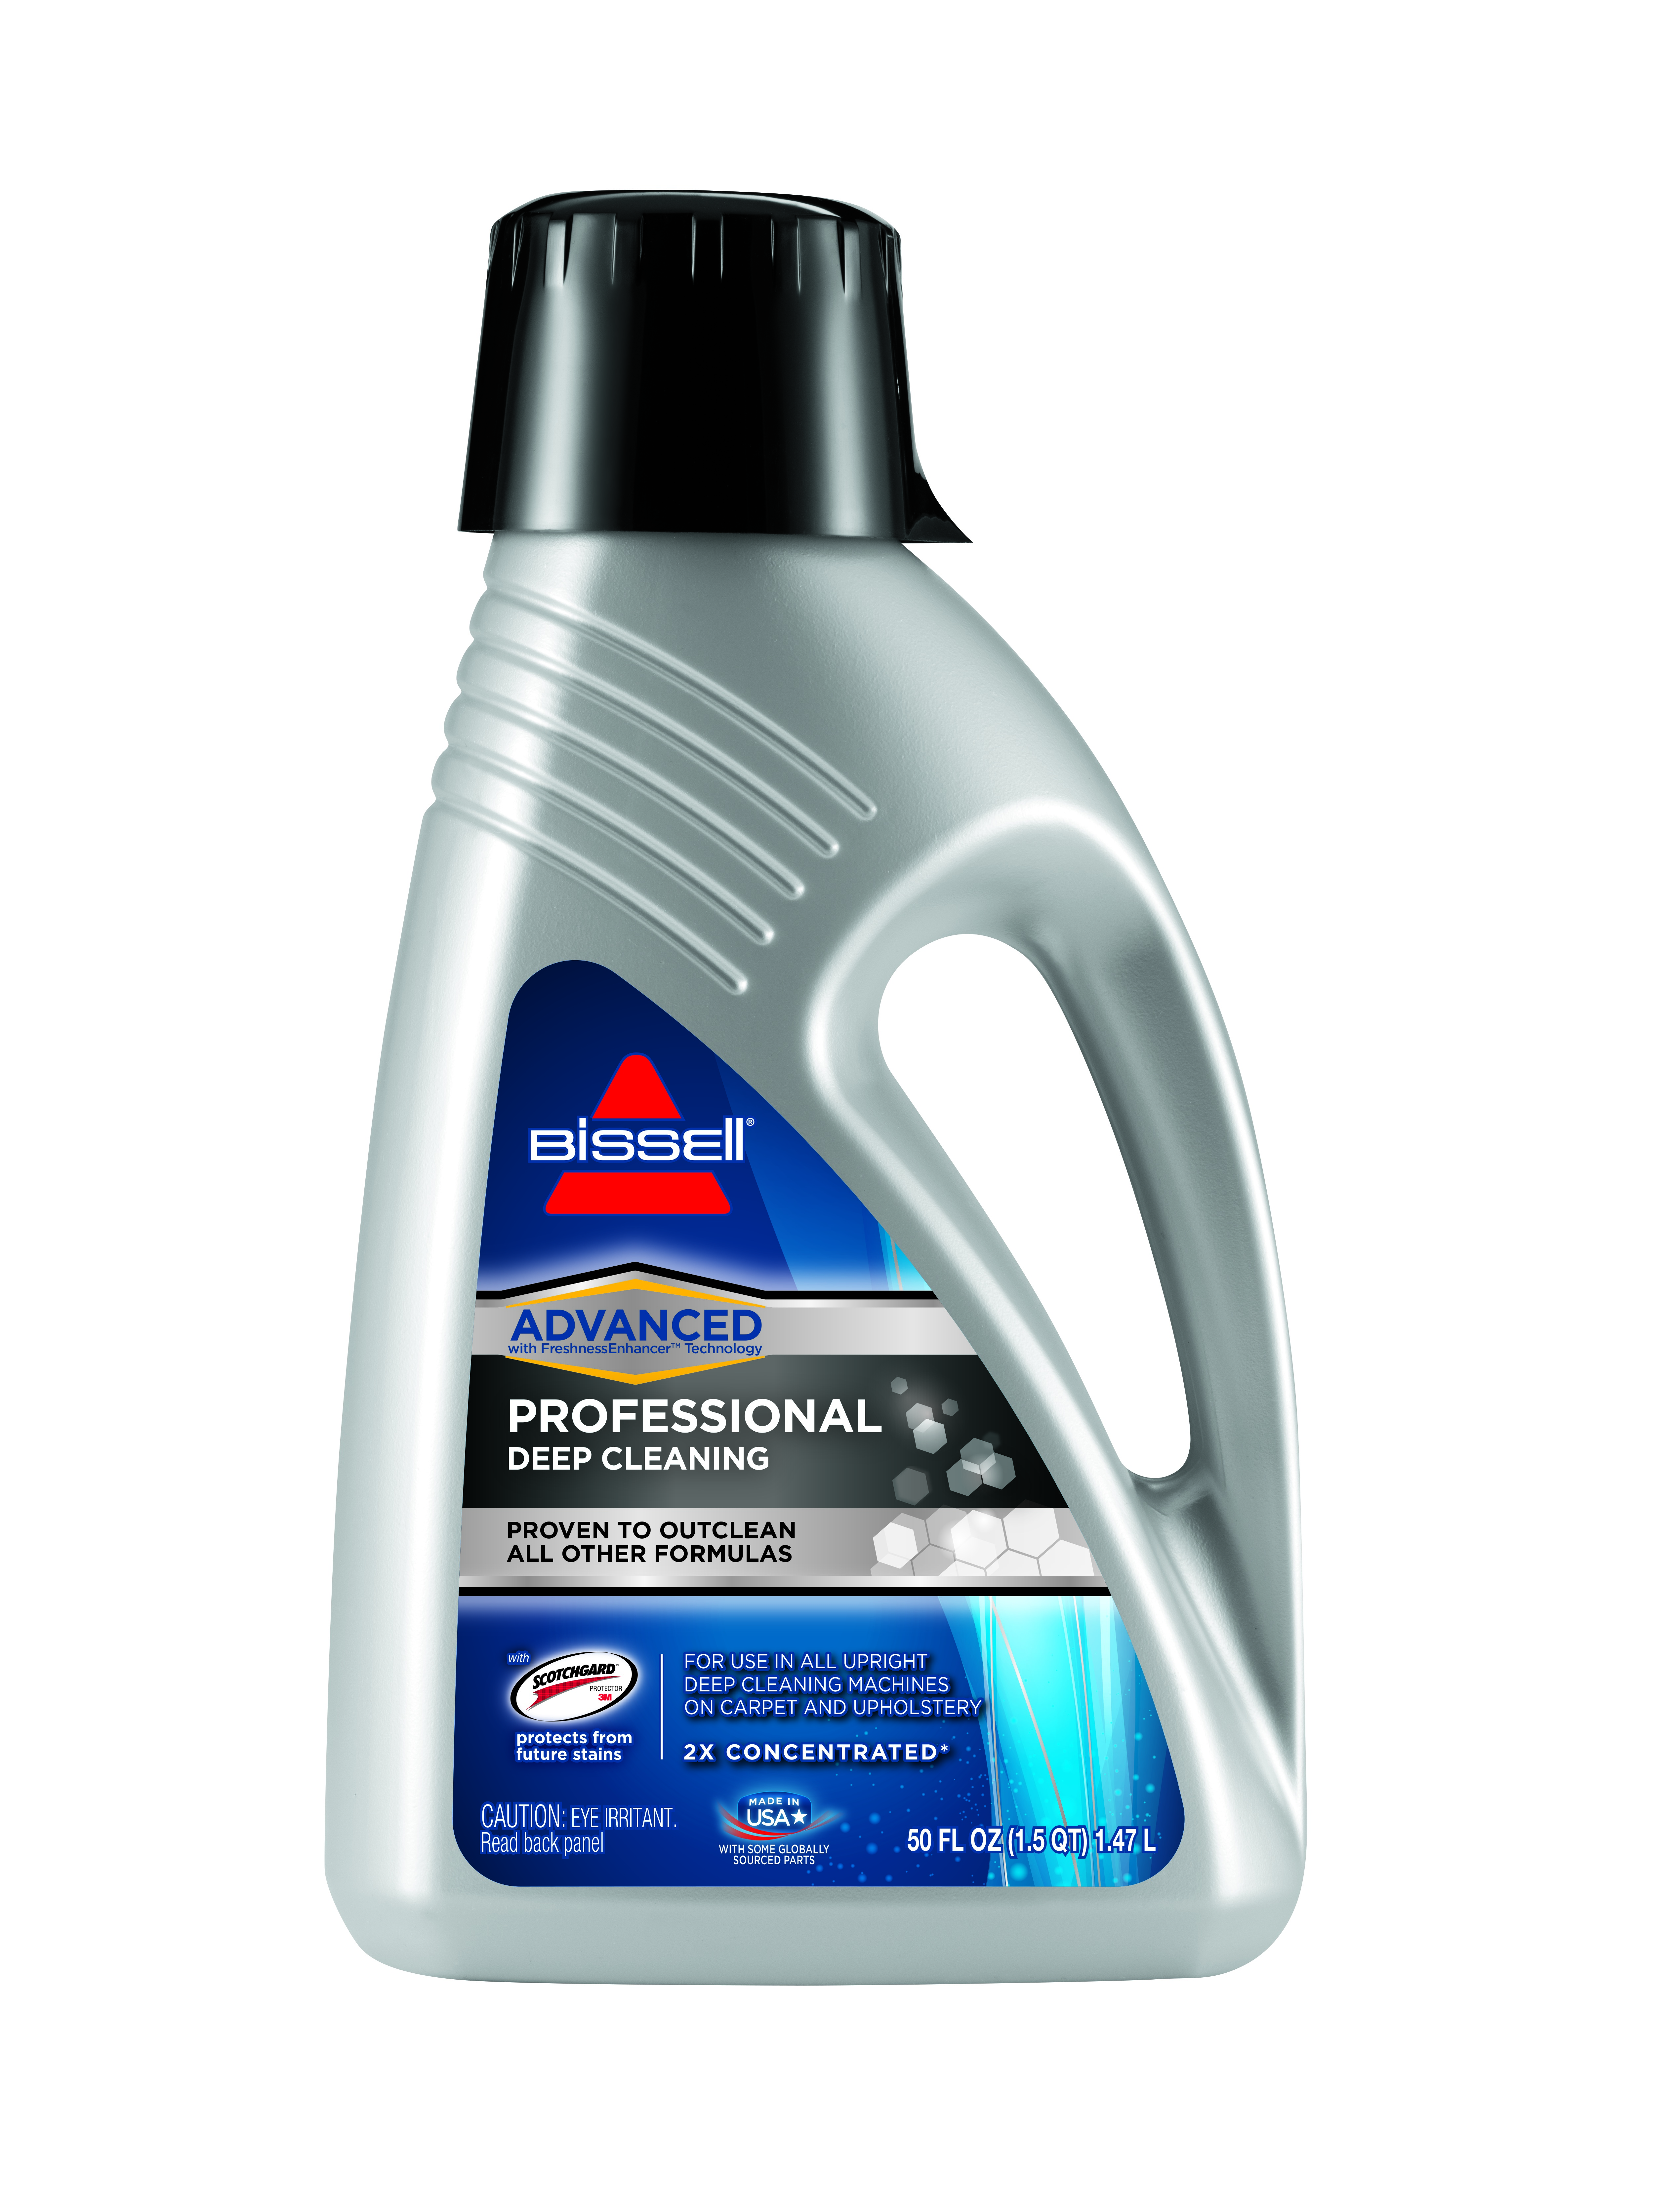 Bissell 2x Professional Deep Cleaning Carpet Washer Formula